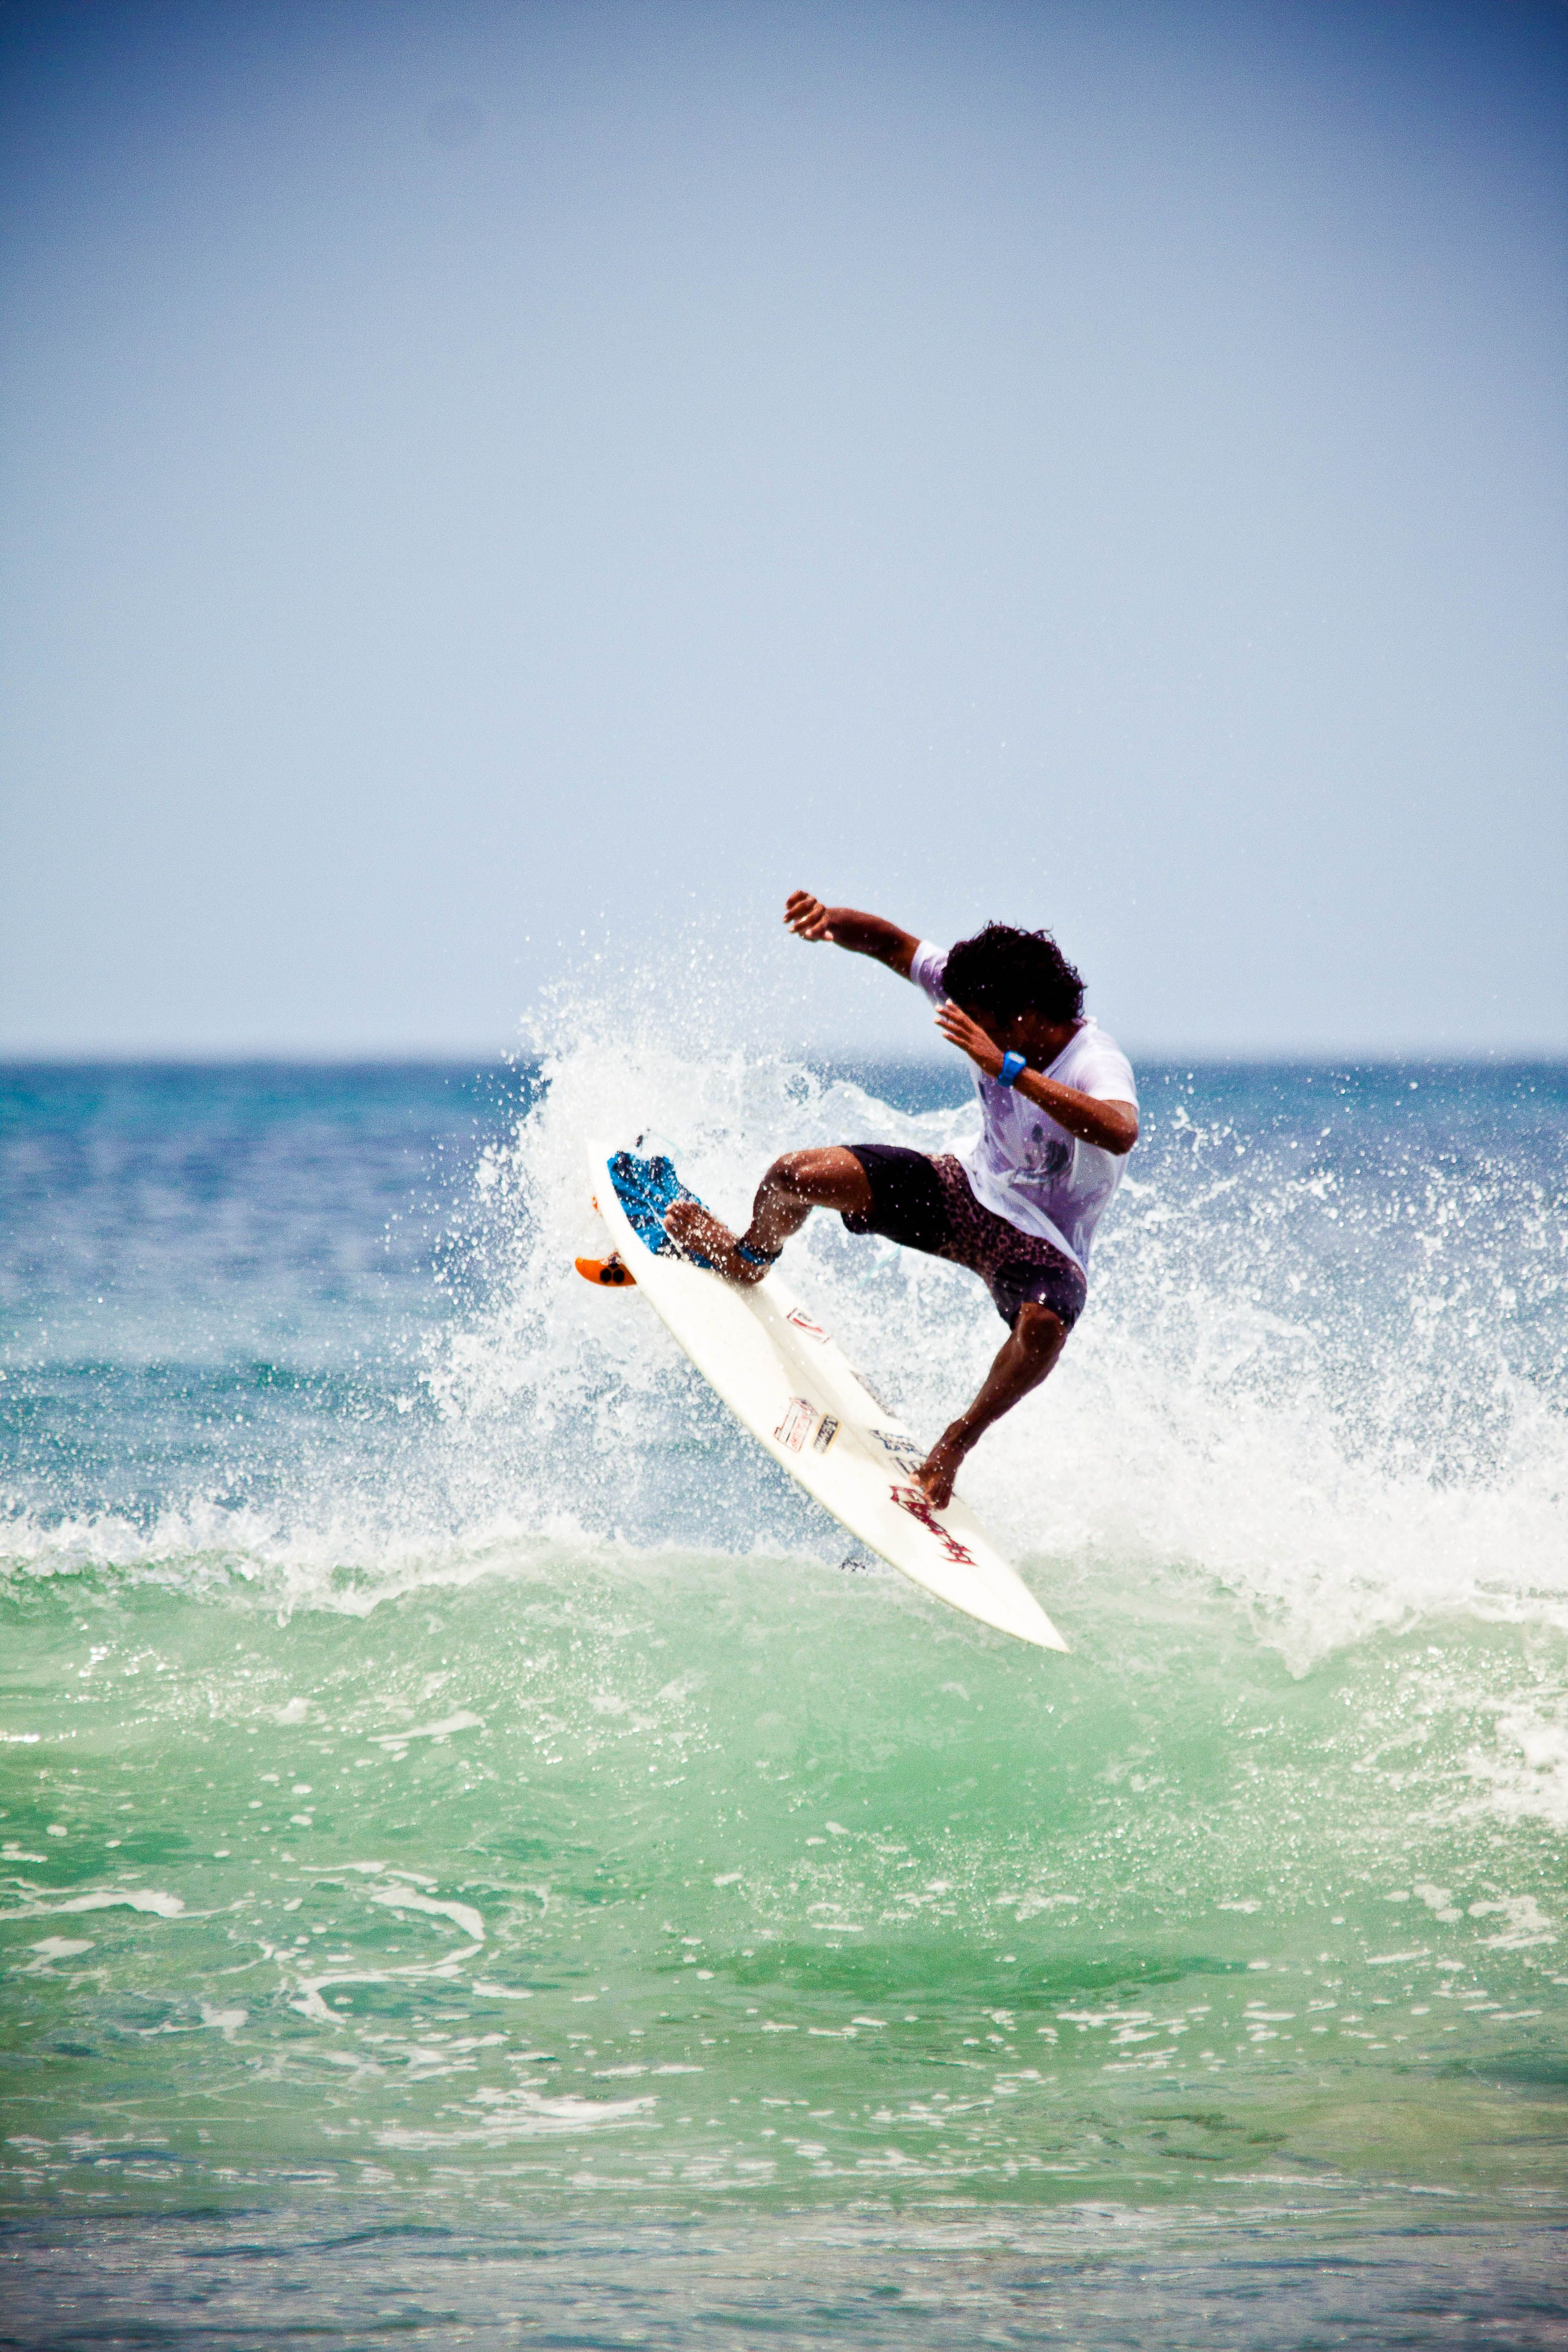 Surfing the waves at Maderas Beach, Nicaragua